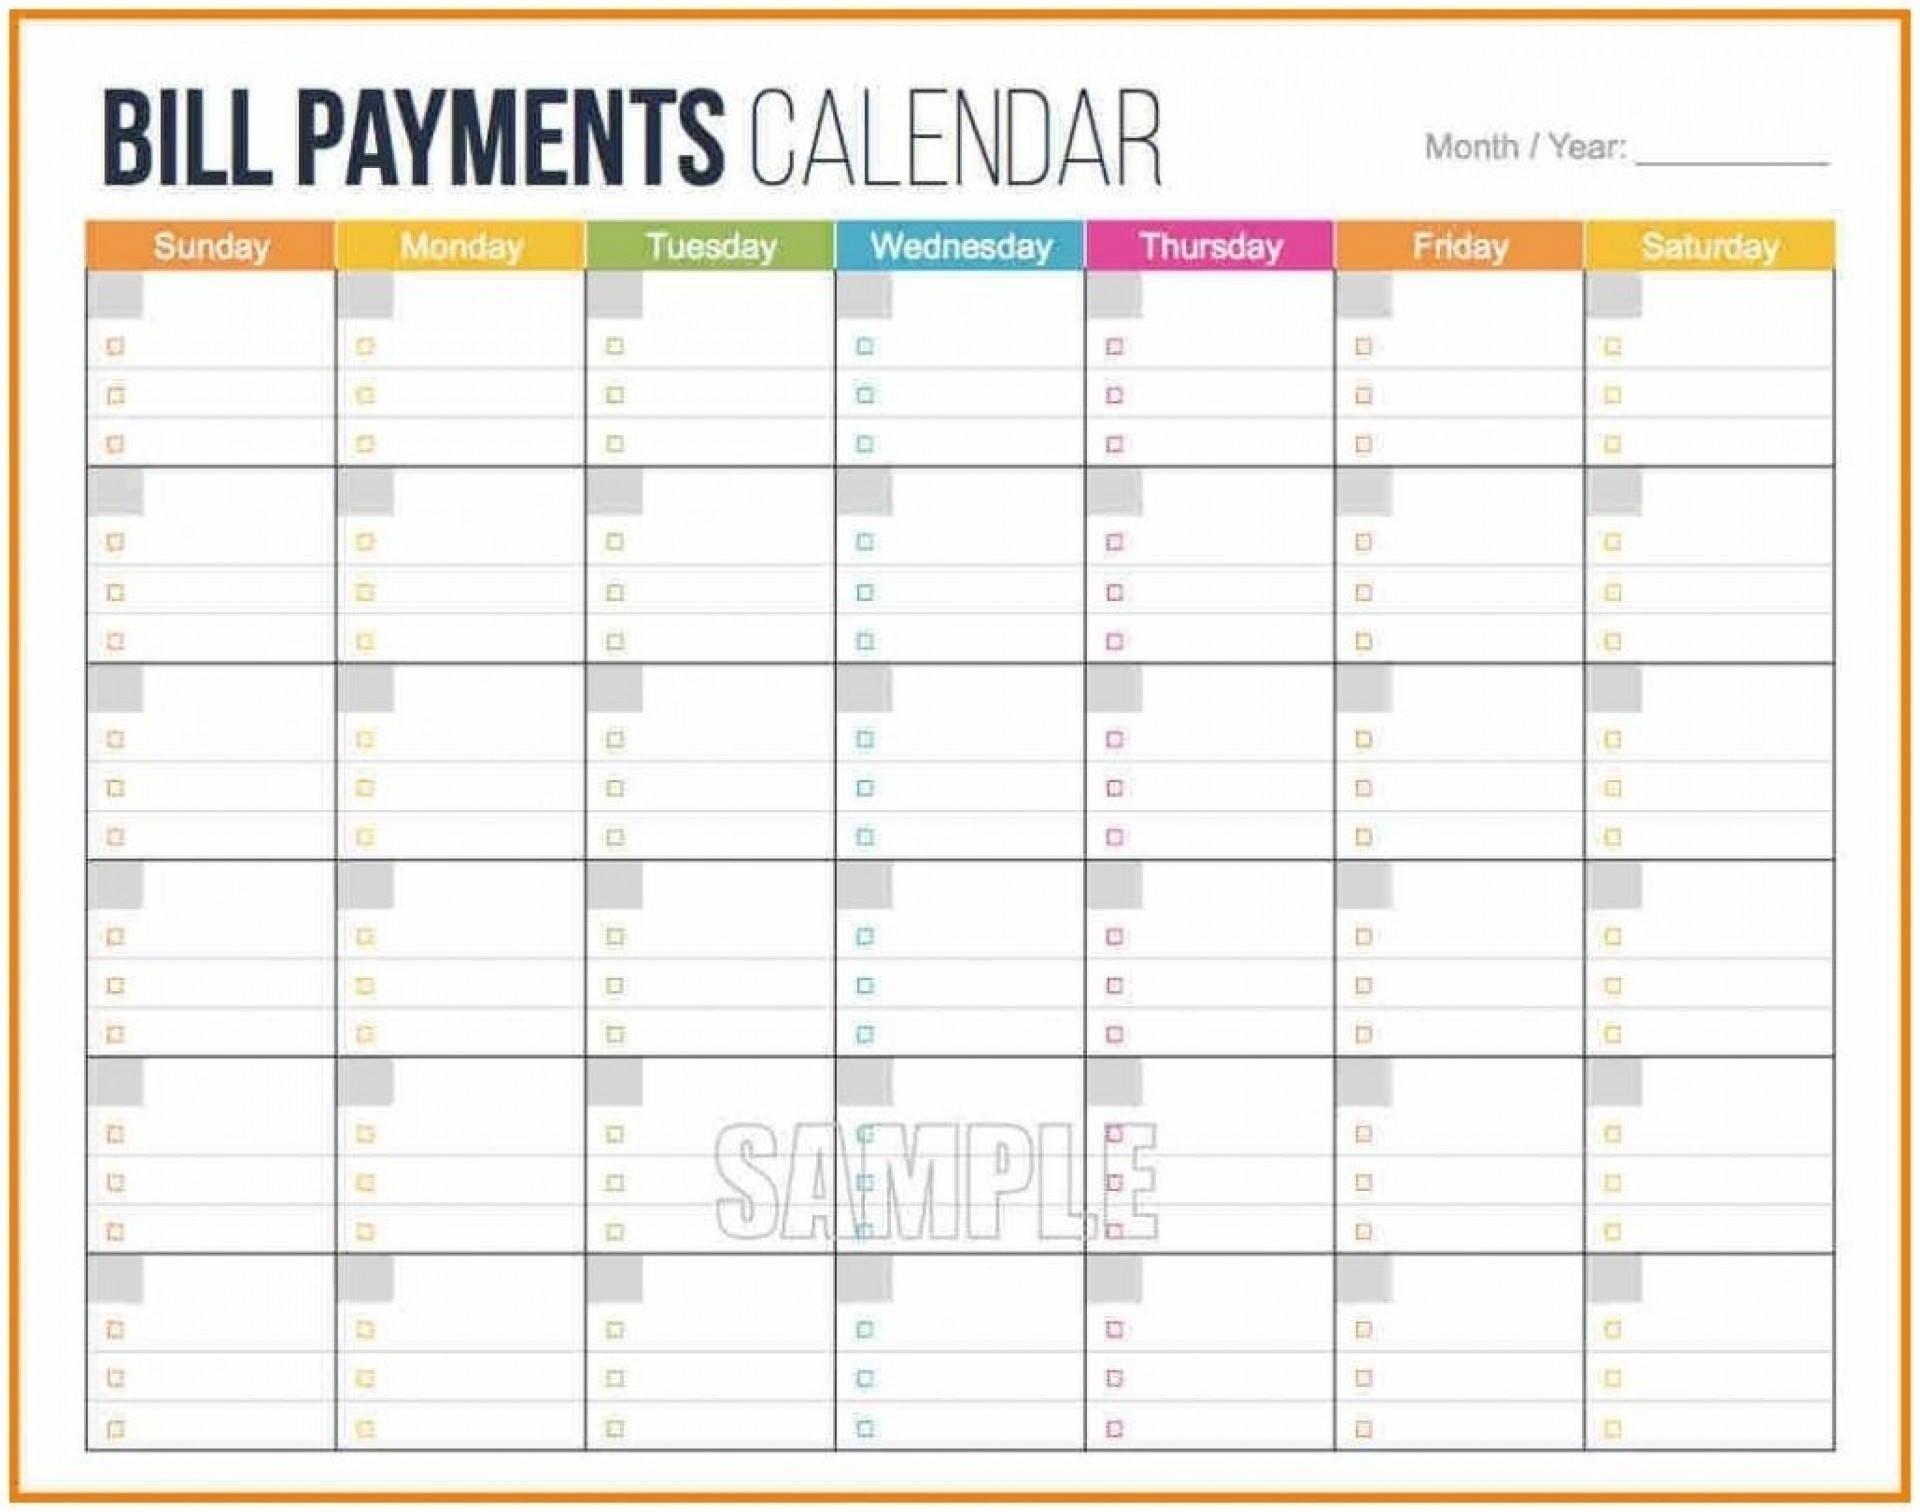 Printable Bill Calendar 2020 Monthly | Calendar Template  Free Bill Pay Calendar 2020